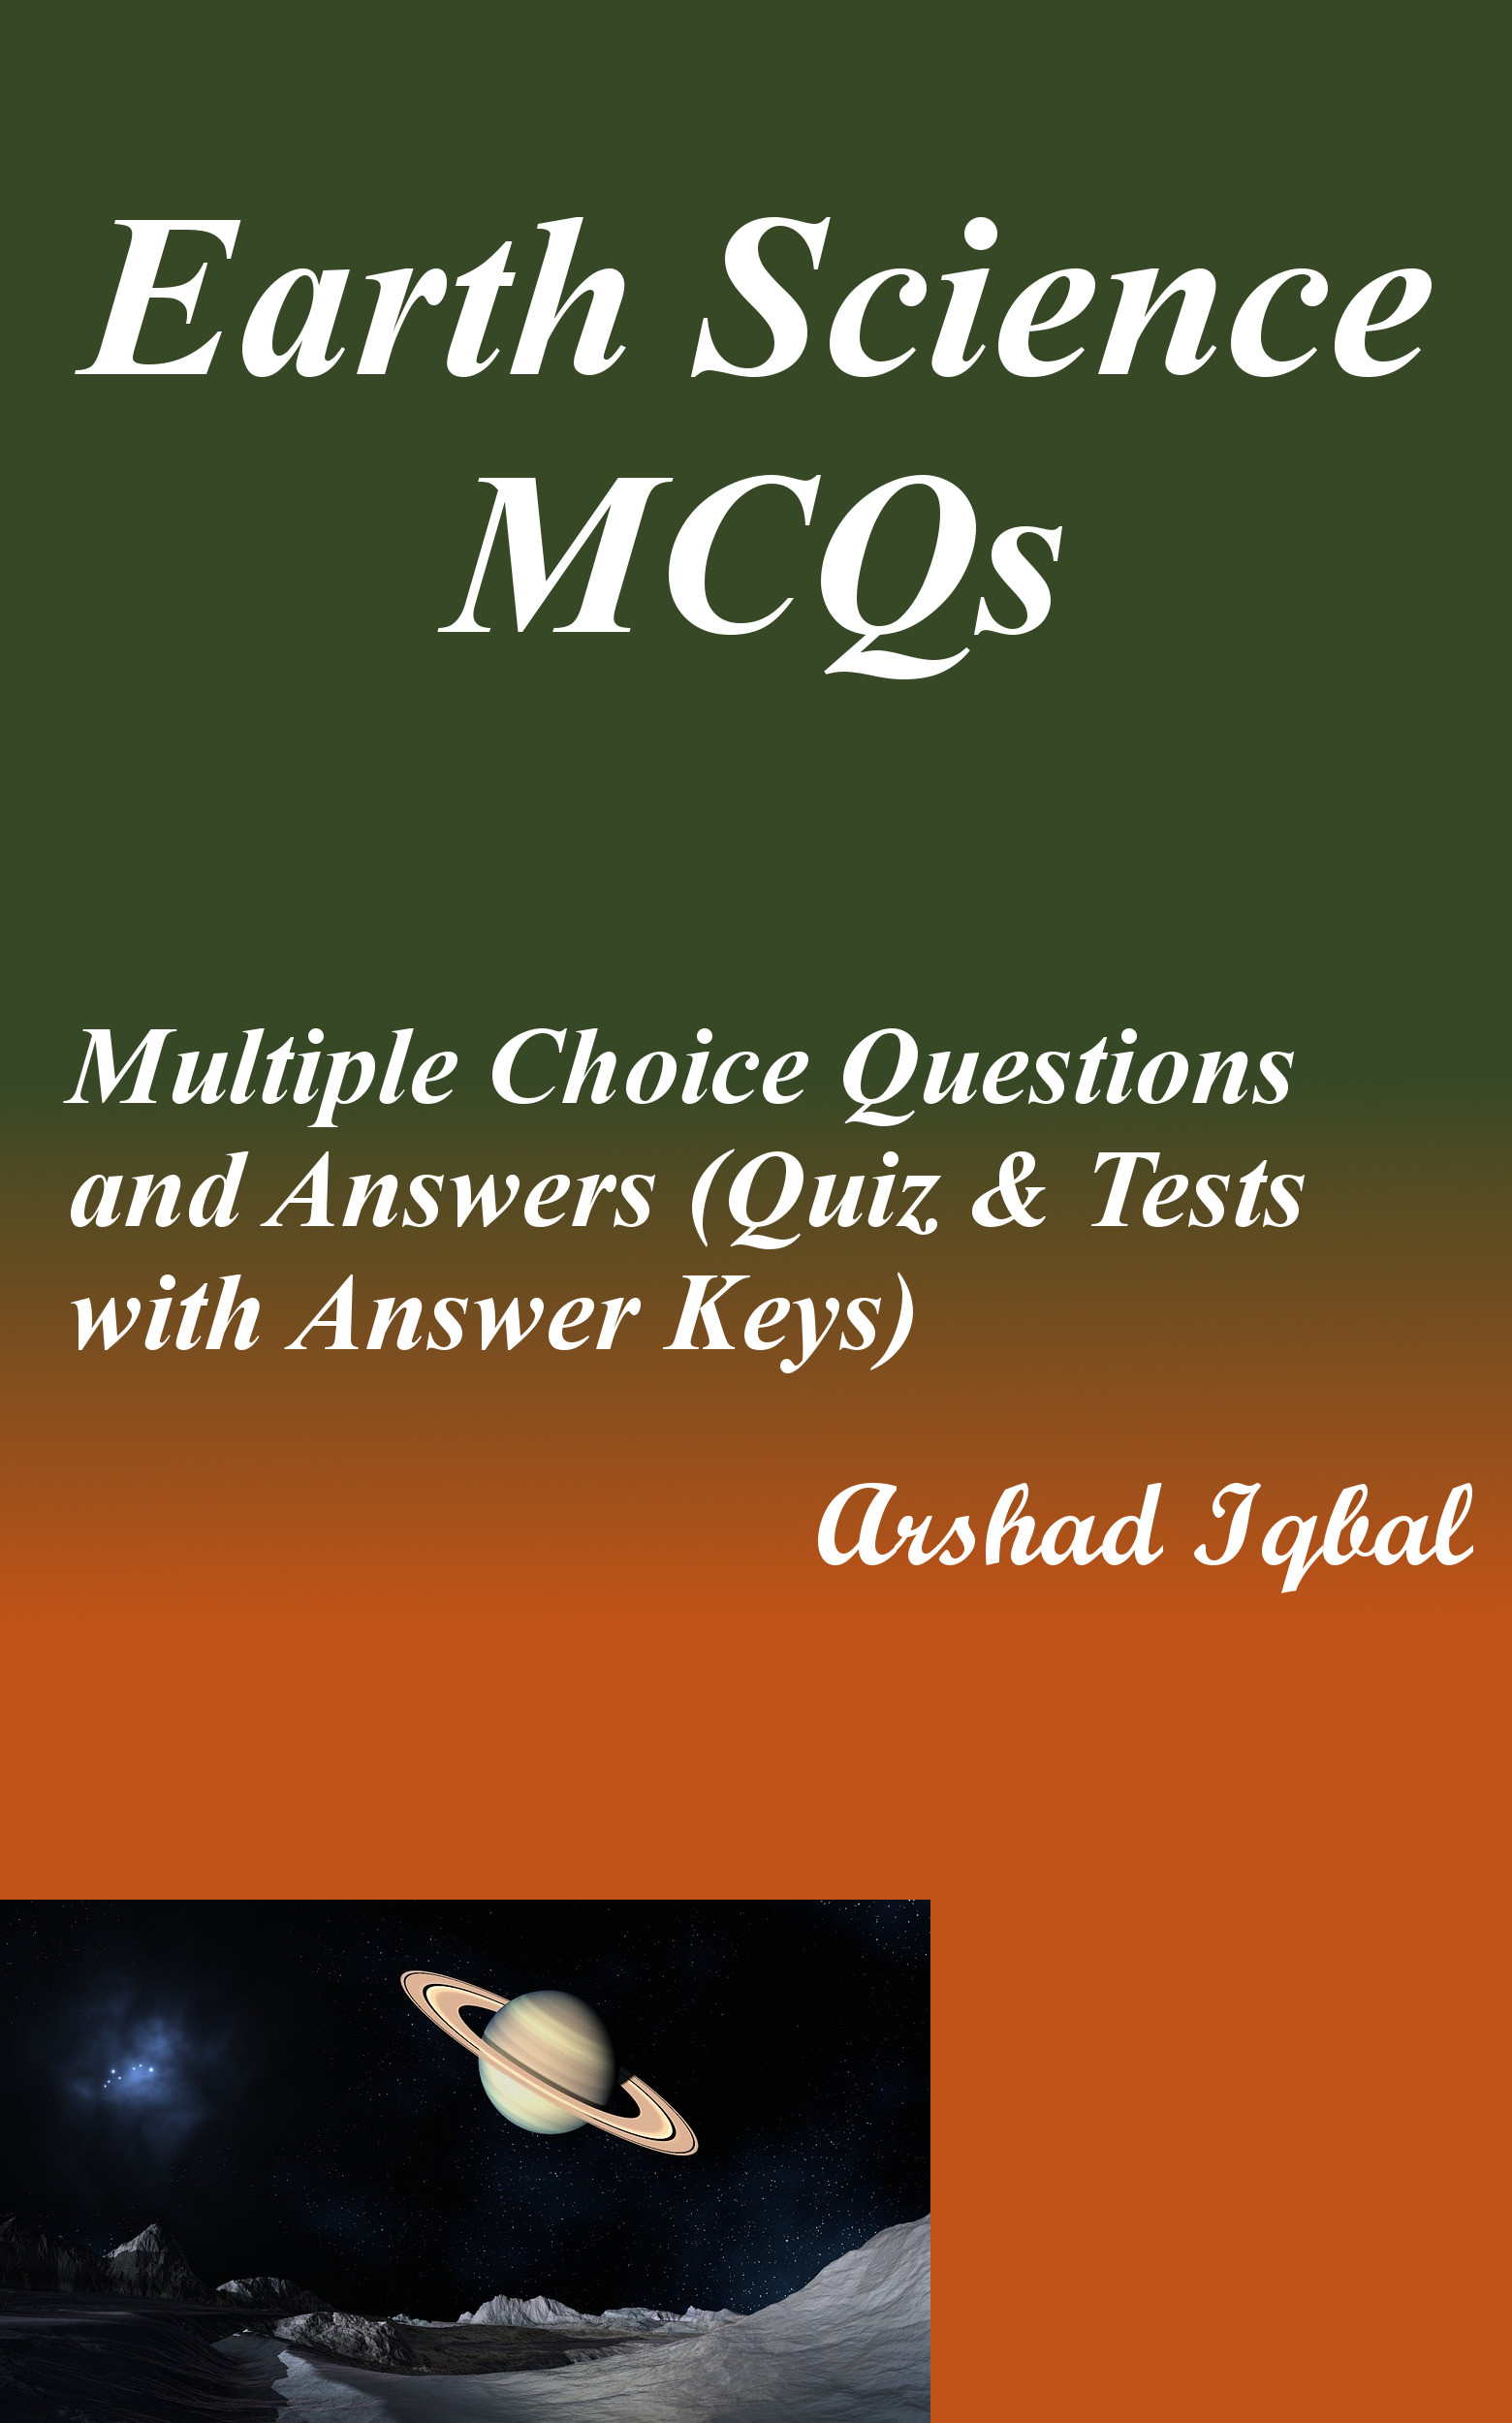 Earth Science MCQs: Multiple Choice Questions and Answers (Quiz & Tests with Answer Keys)